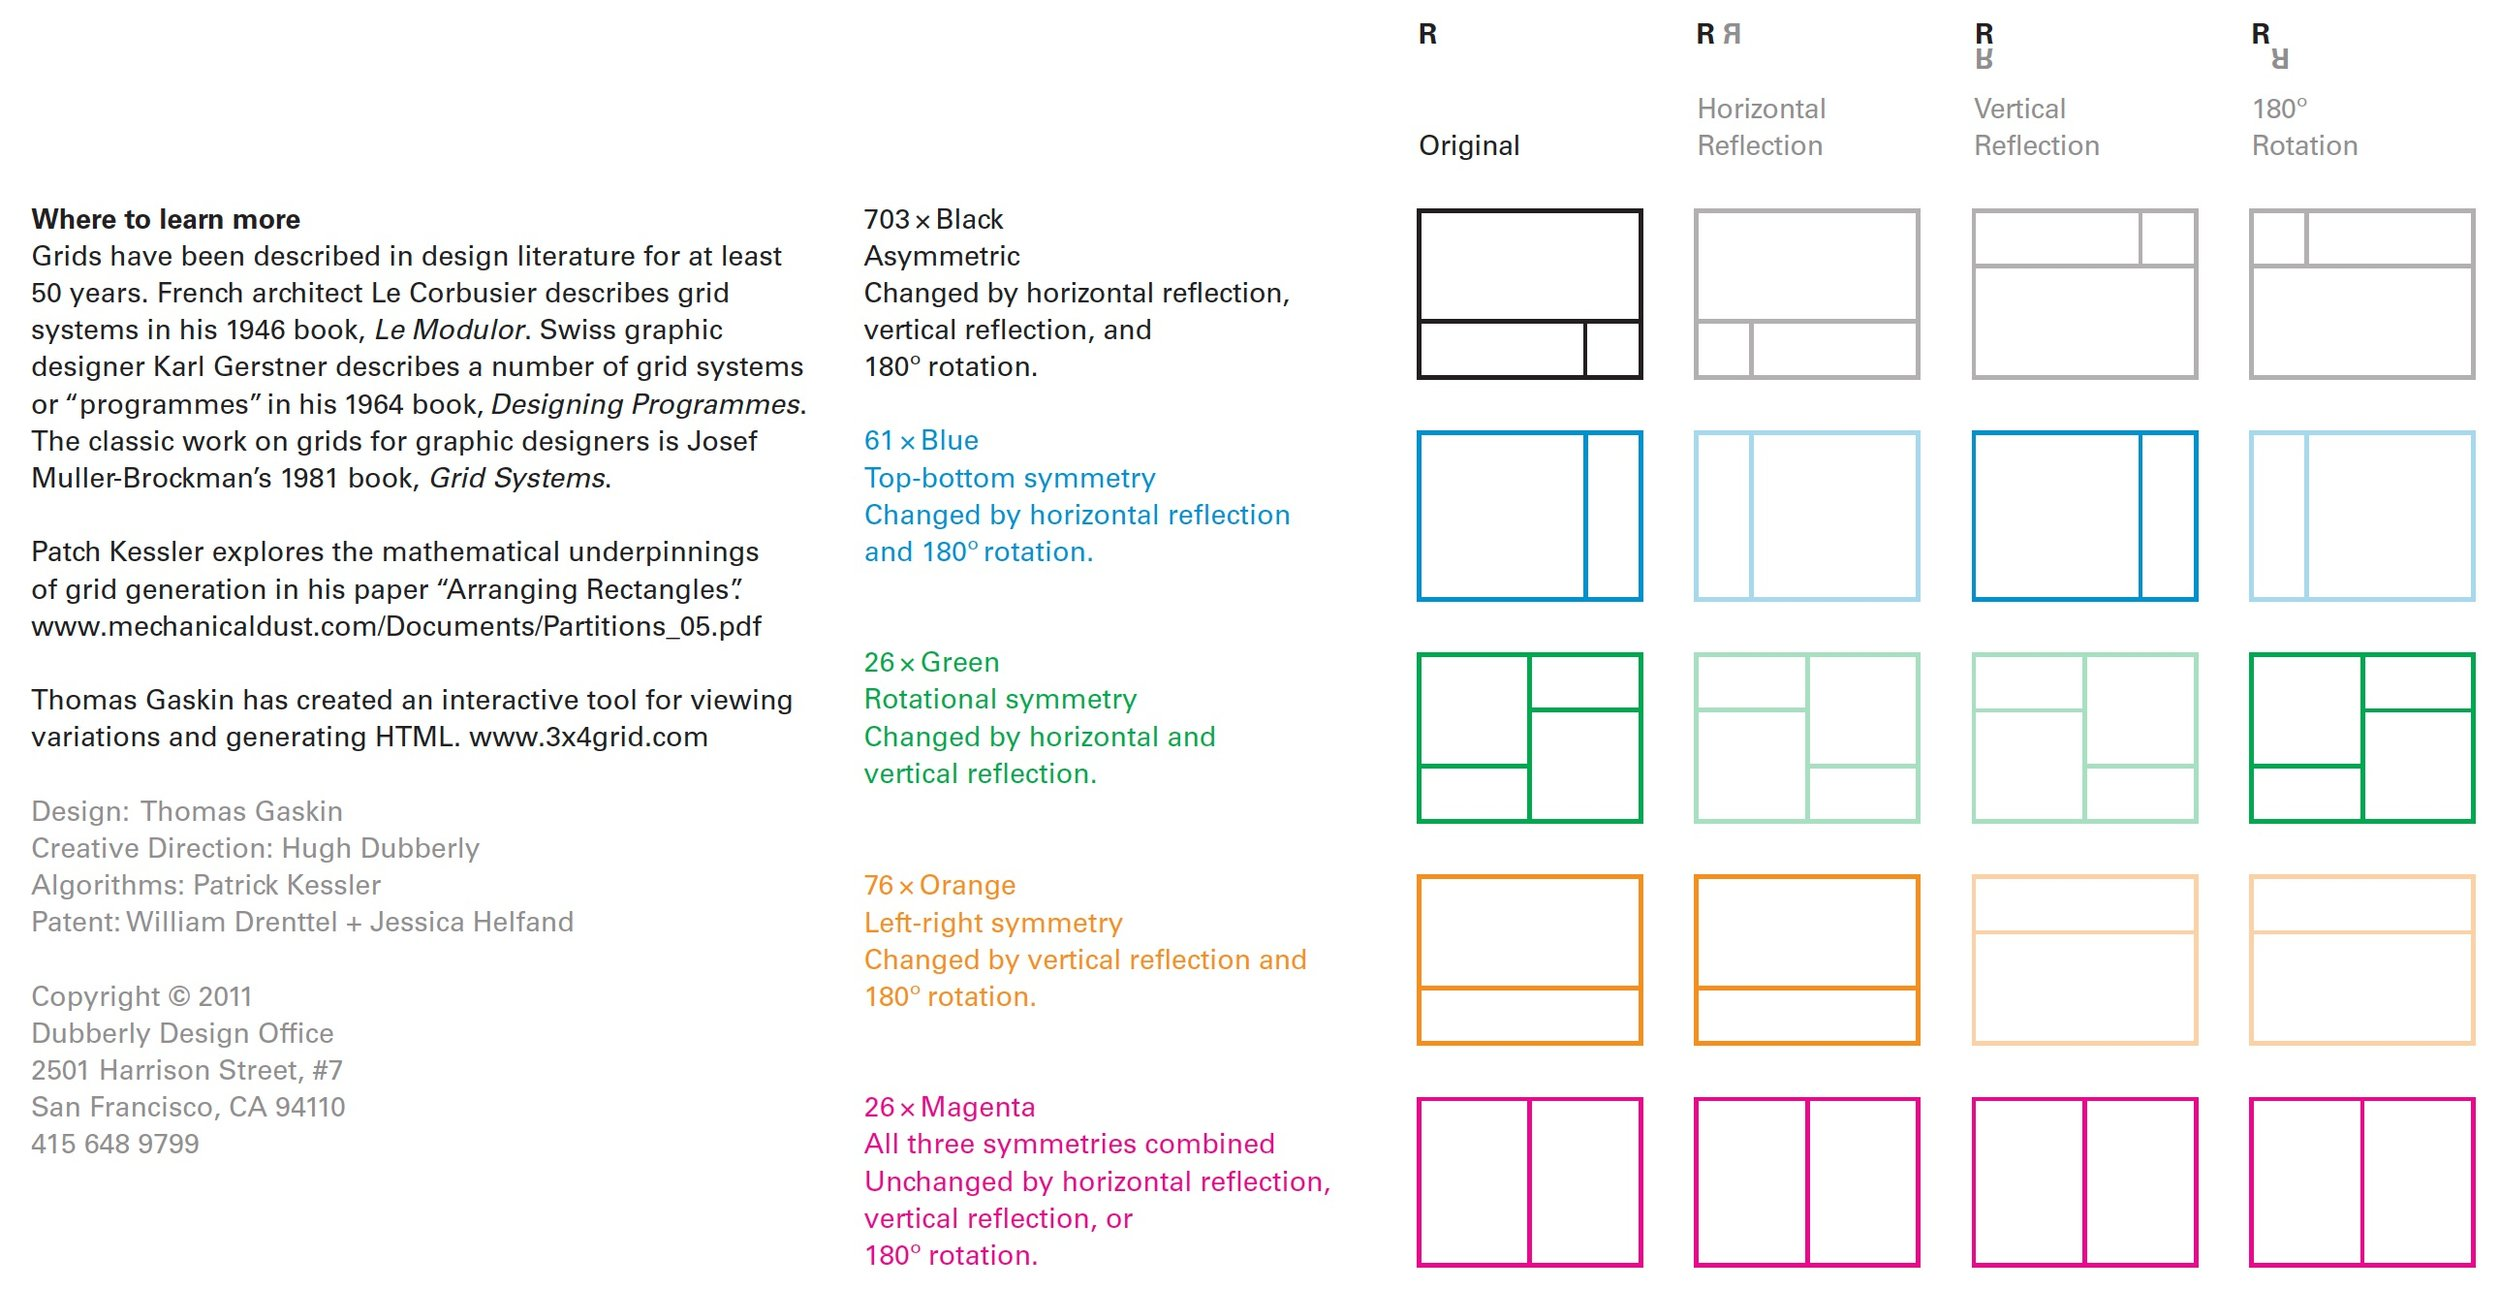 """From the PDF Poster: """"The 892 unique ways to partition a 3 x 4 grid""""  Designed by Thomas Gaskin. Creative direction by Hugh Dubberly. Algorithms by Patrick Kessler. Patent belongs to William Drenttel + Jessica Helfand."""